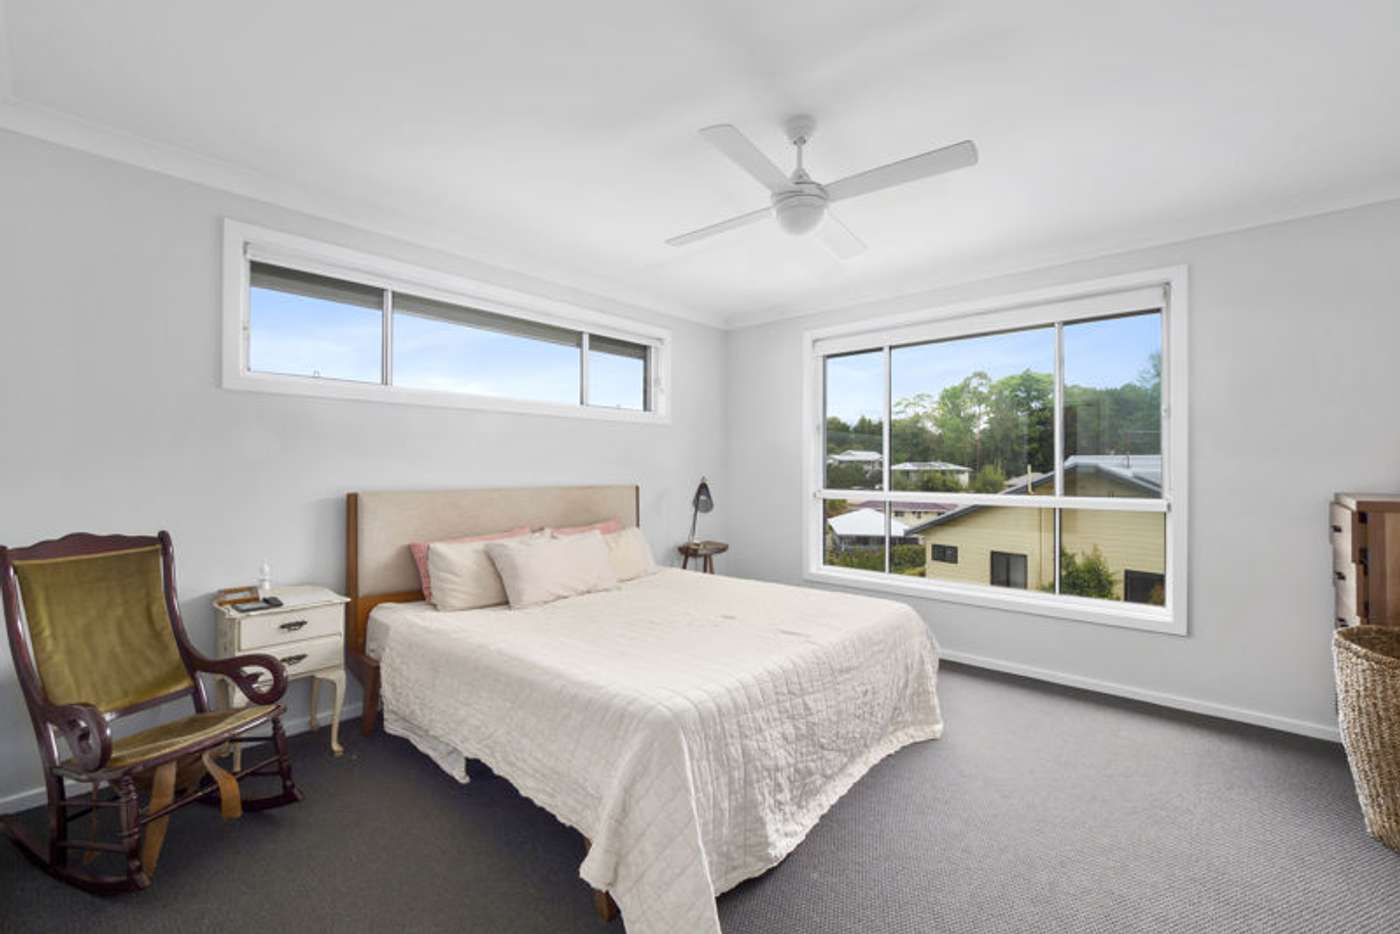 Sixth view of Homely house listing, 6 Ironbark Place, Bellingen NSW 2454